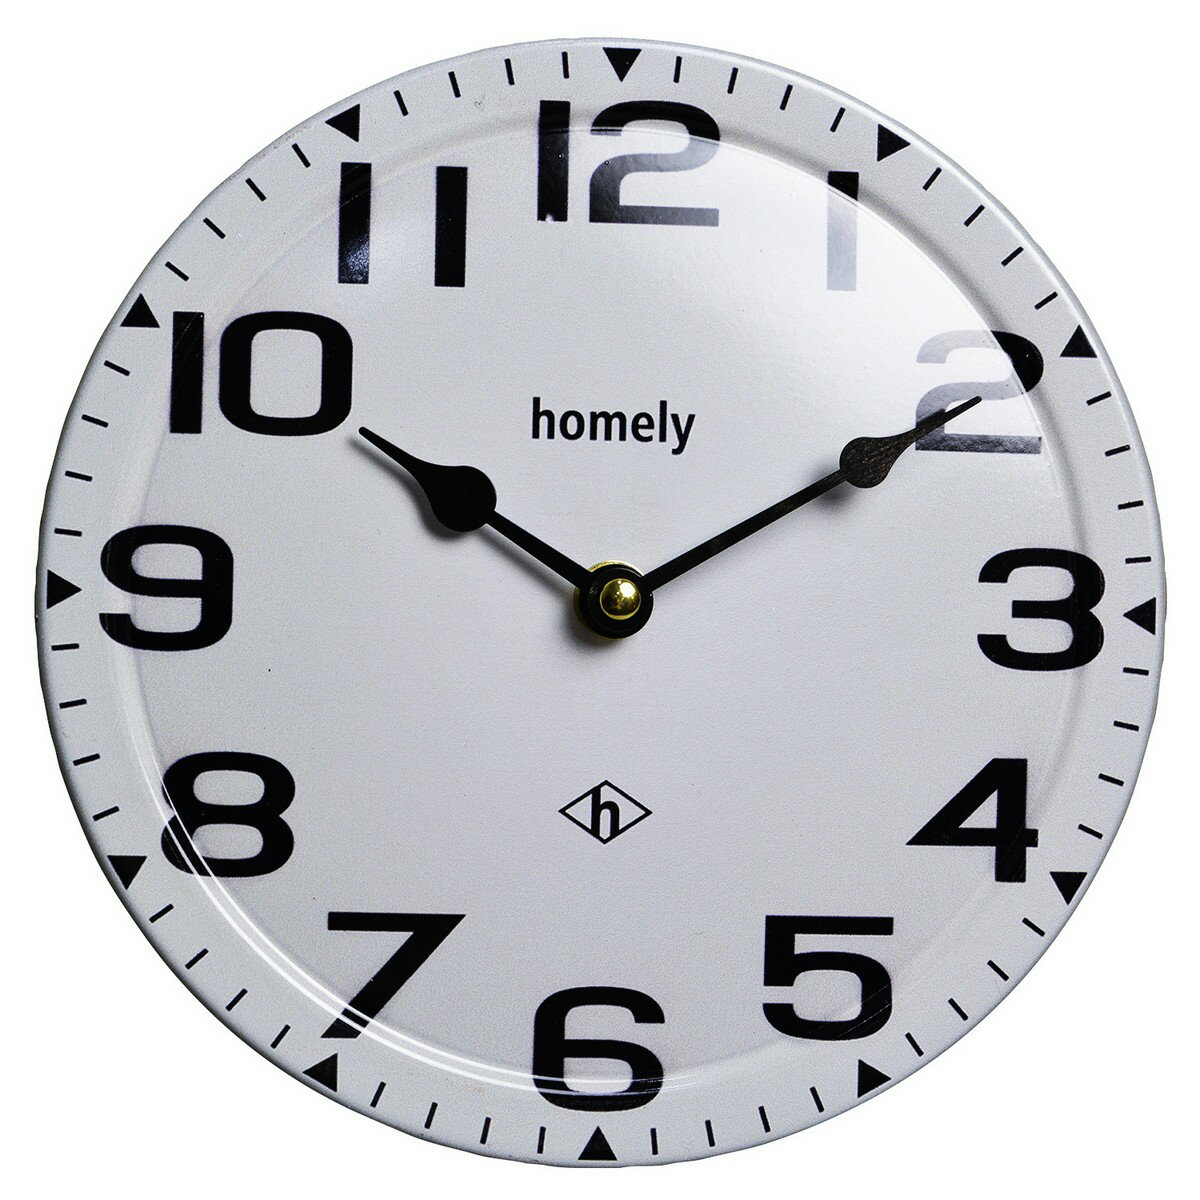 homely wall clock   bl gy1j-171の写真